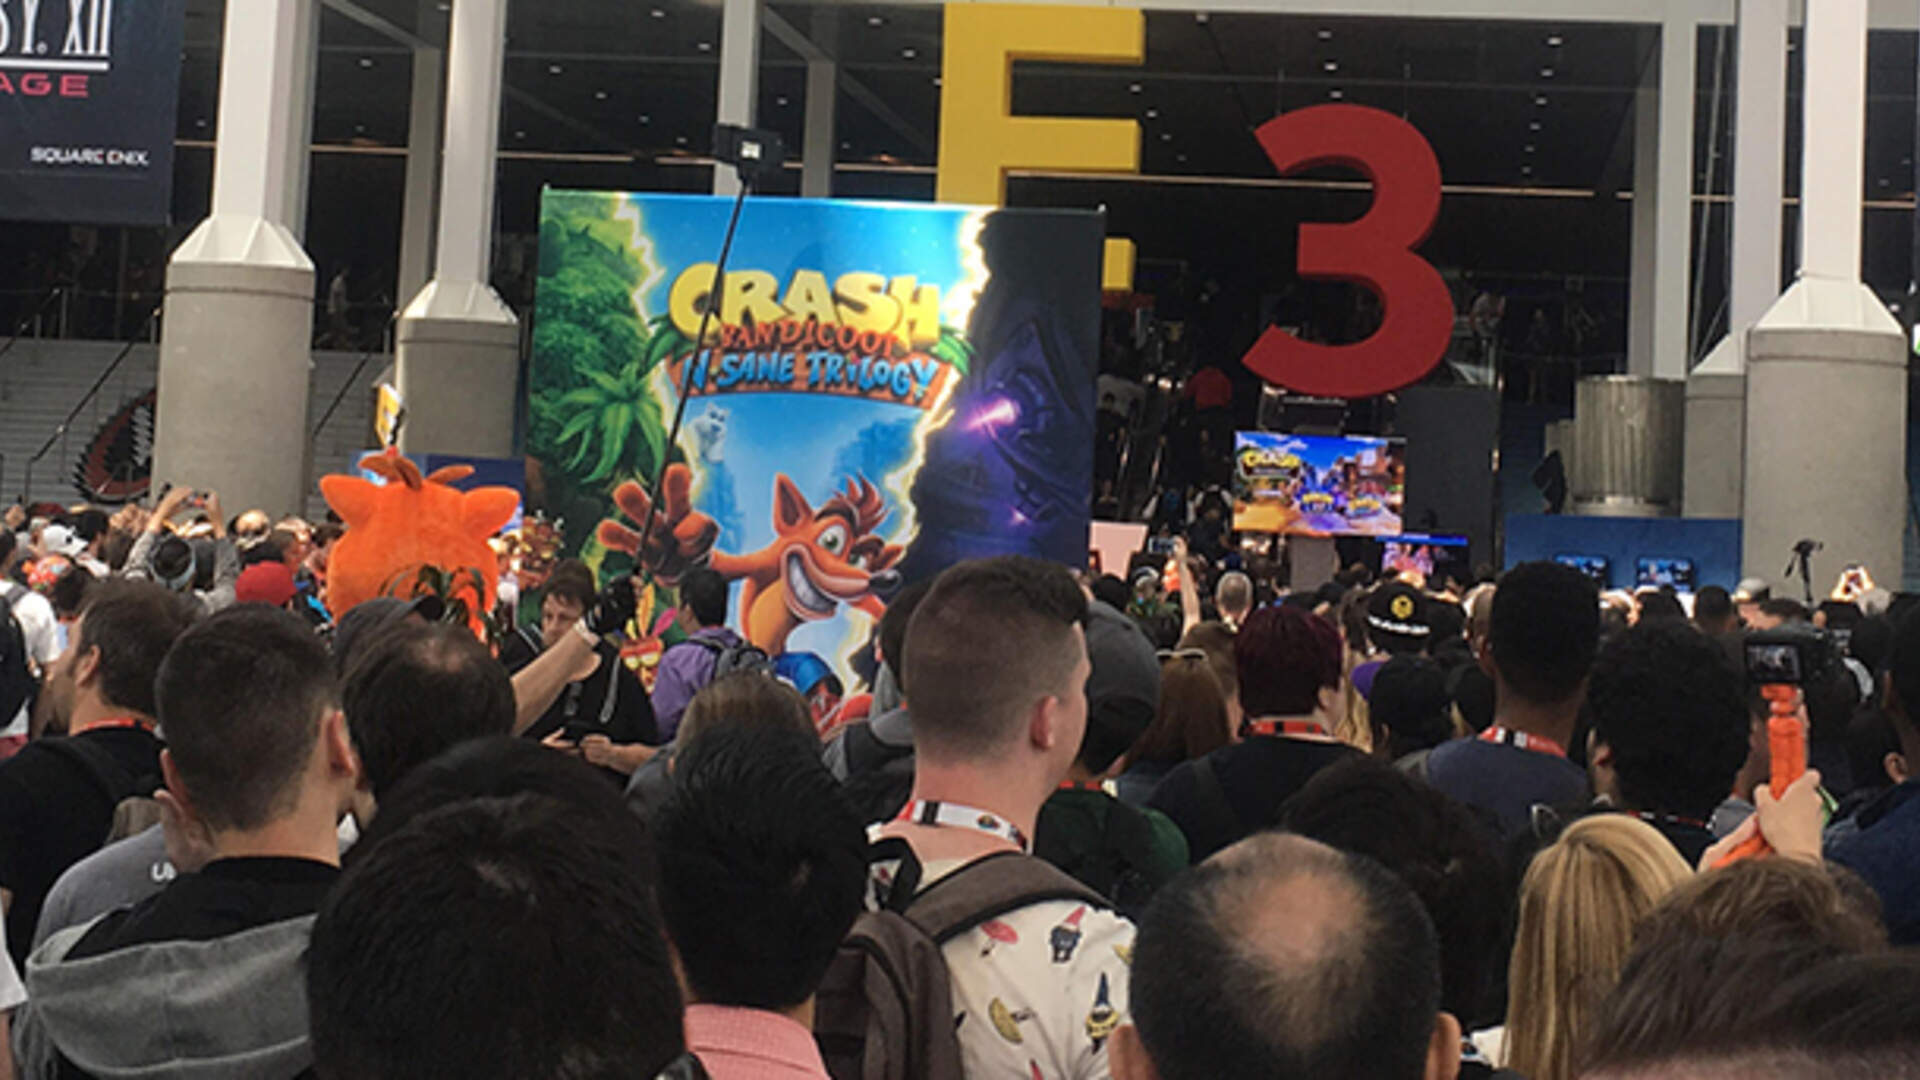 E3 2017 Was Predictably Crowded and Difficult to Navigate on Its First Public Day